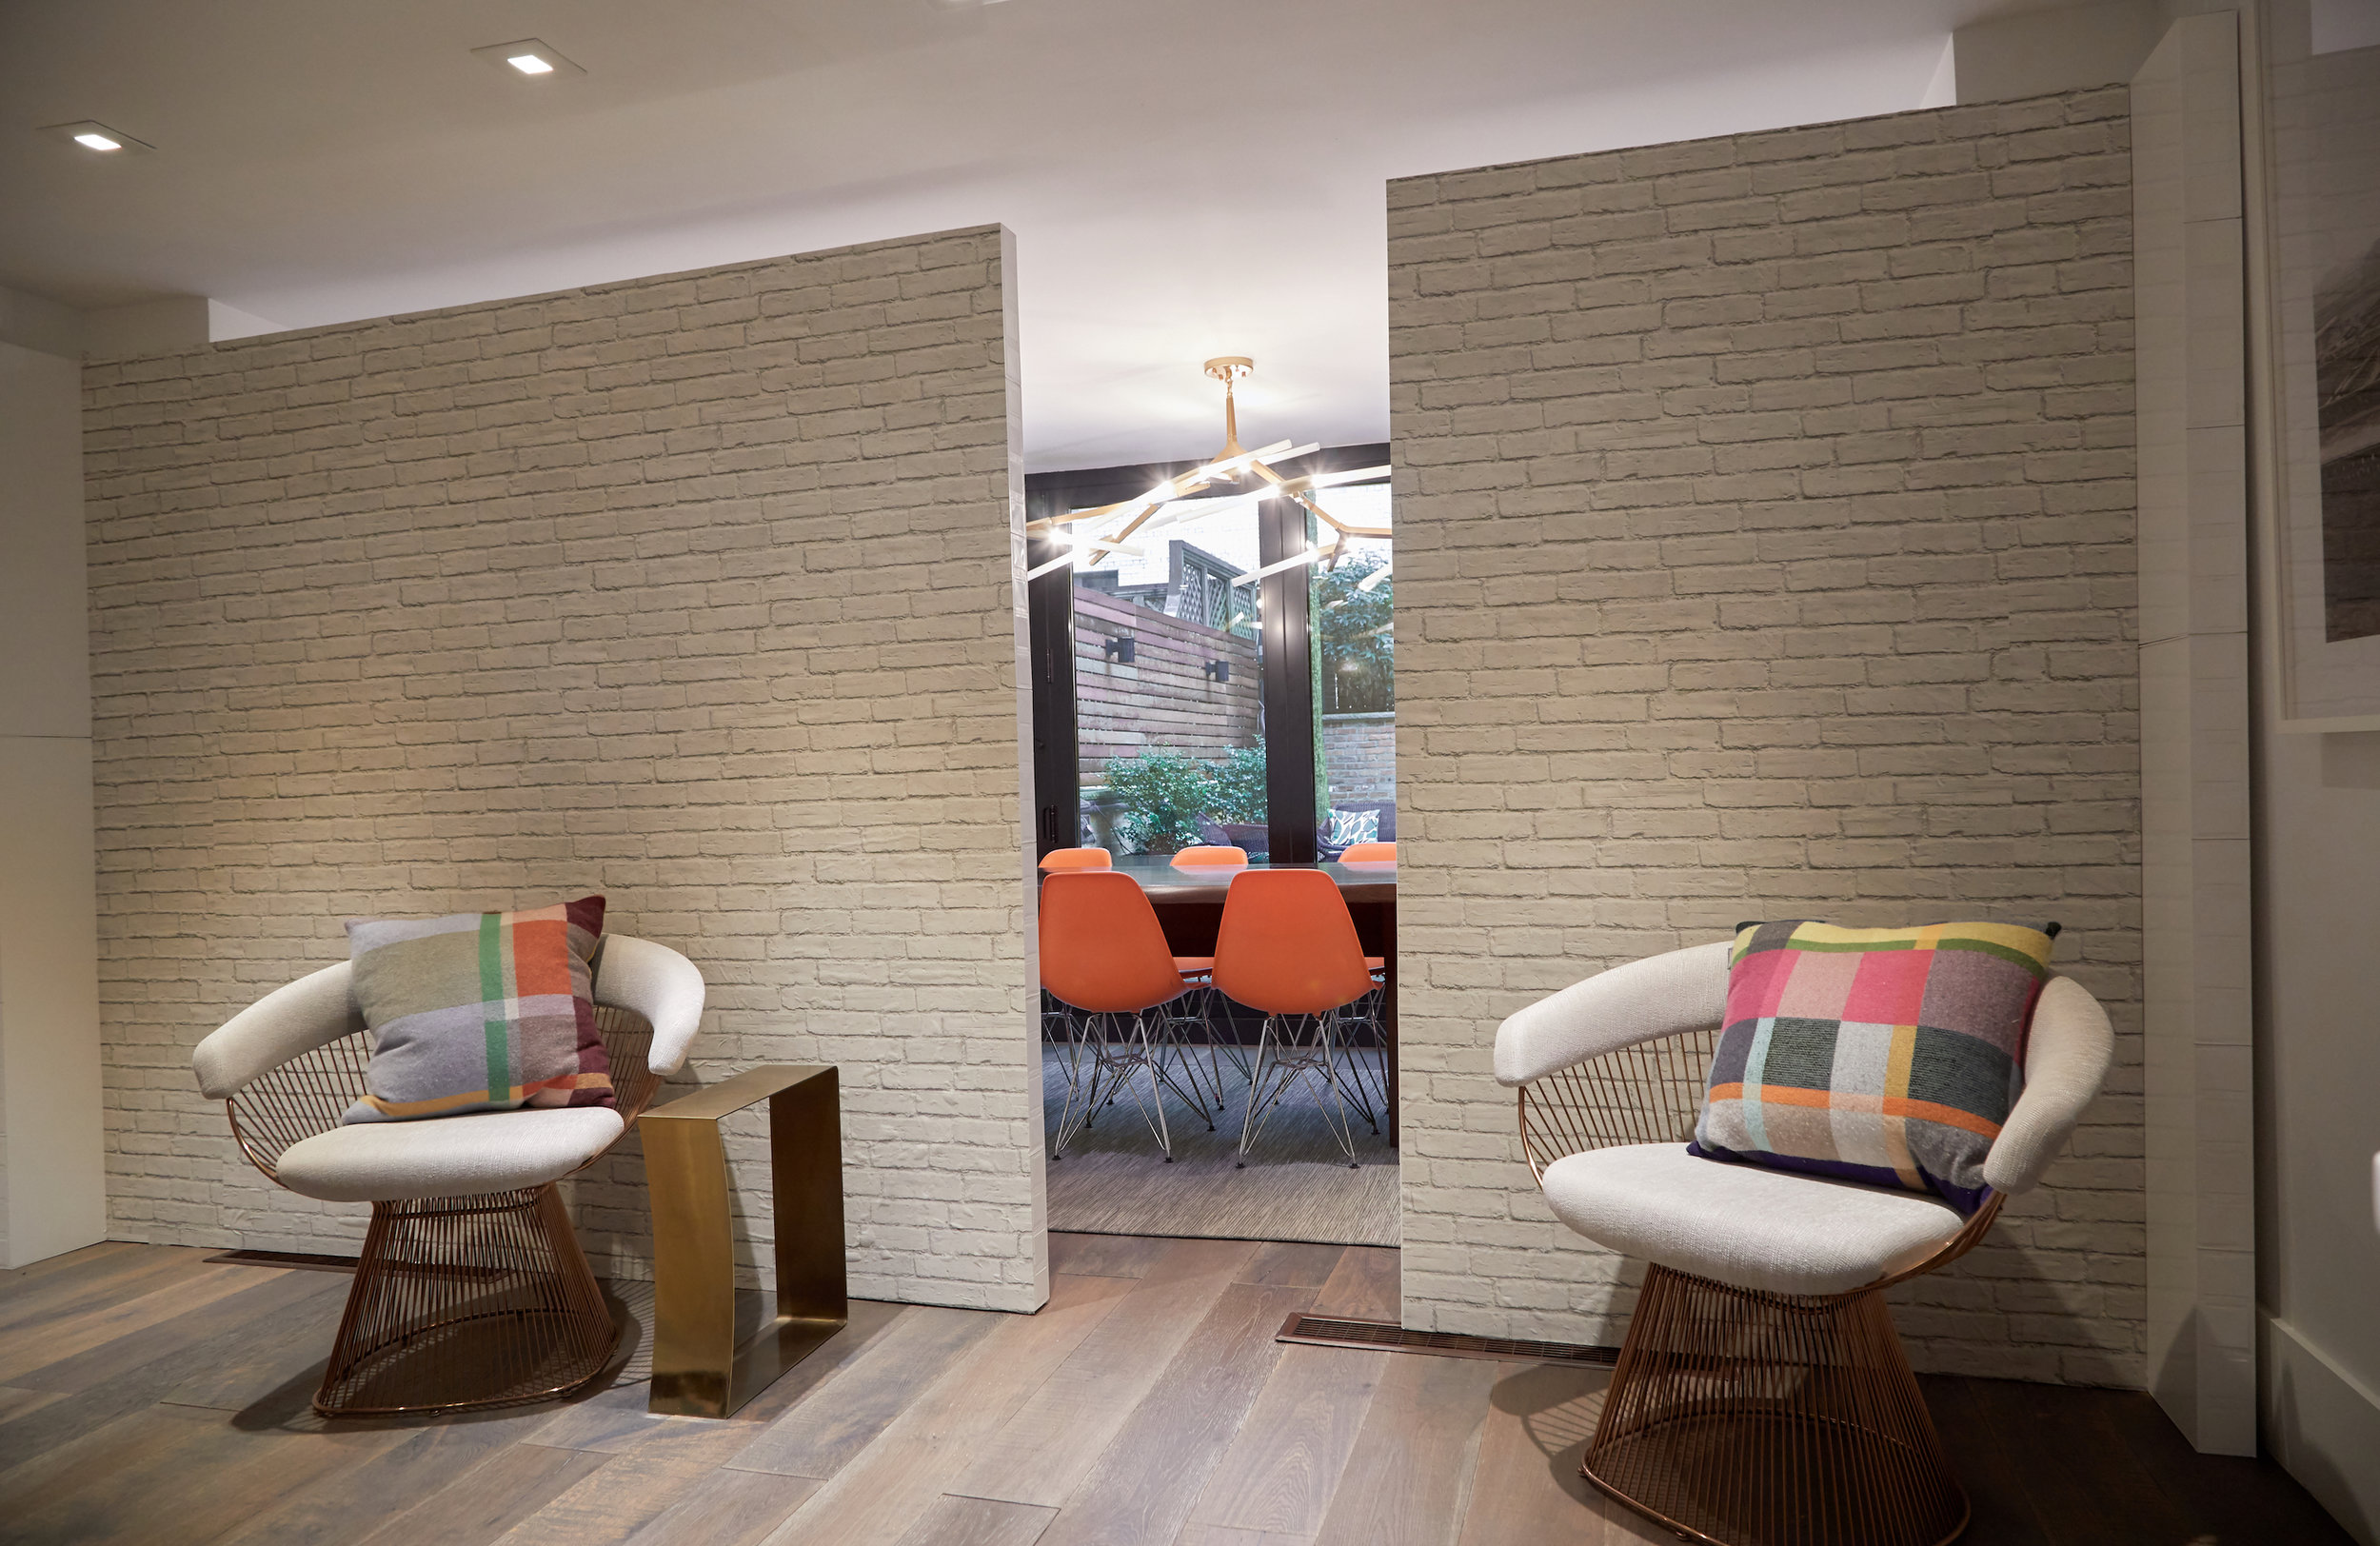 Beautify and enhance your space, while creating rooms and dividers that can be reconfigured as needed.